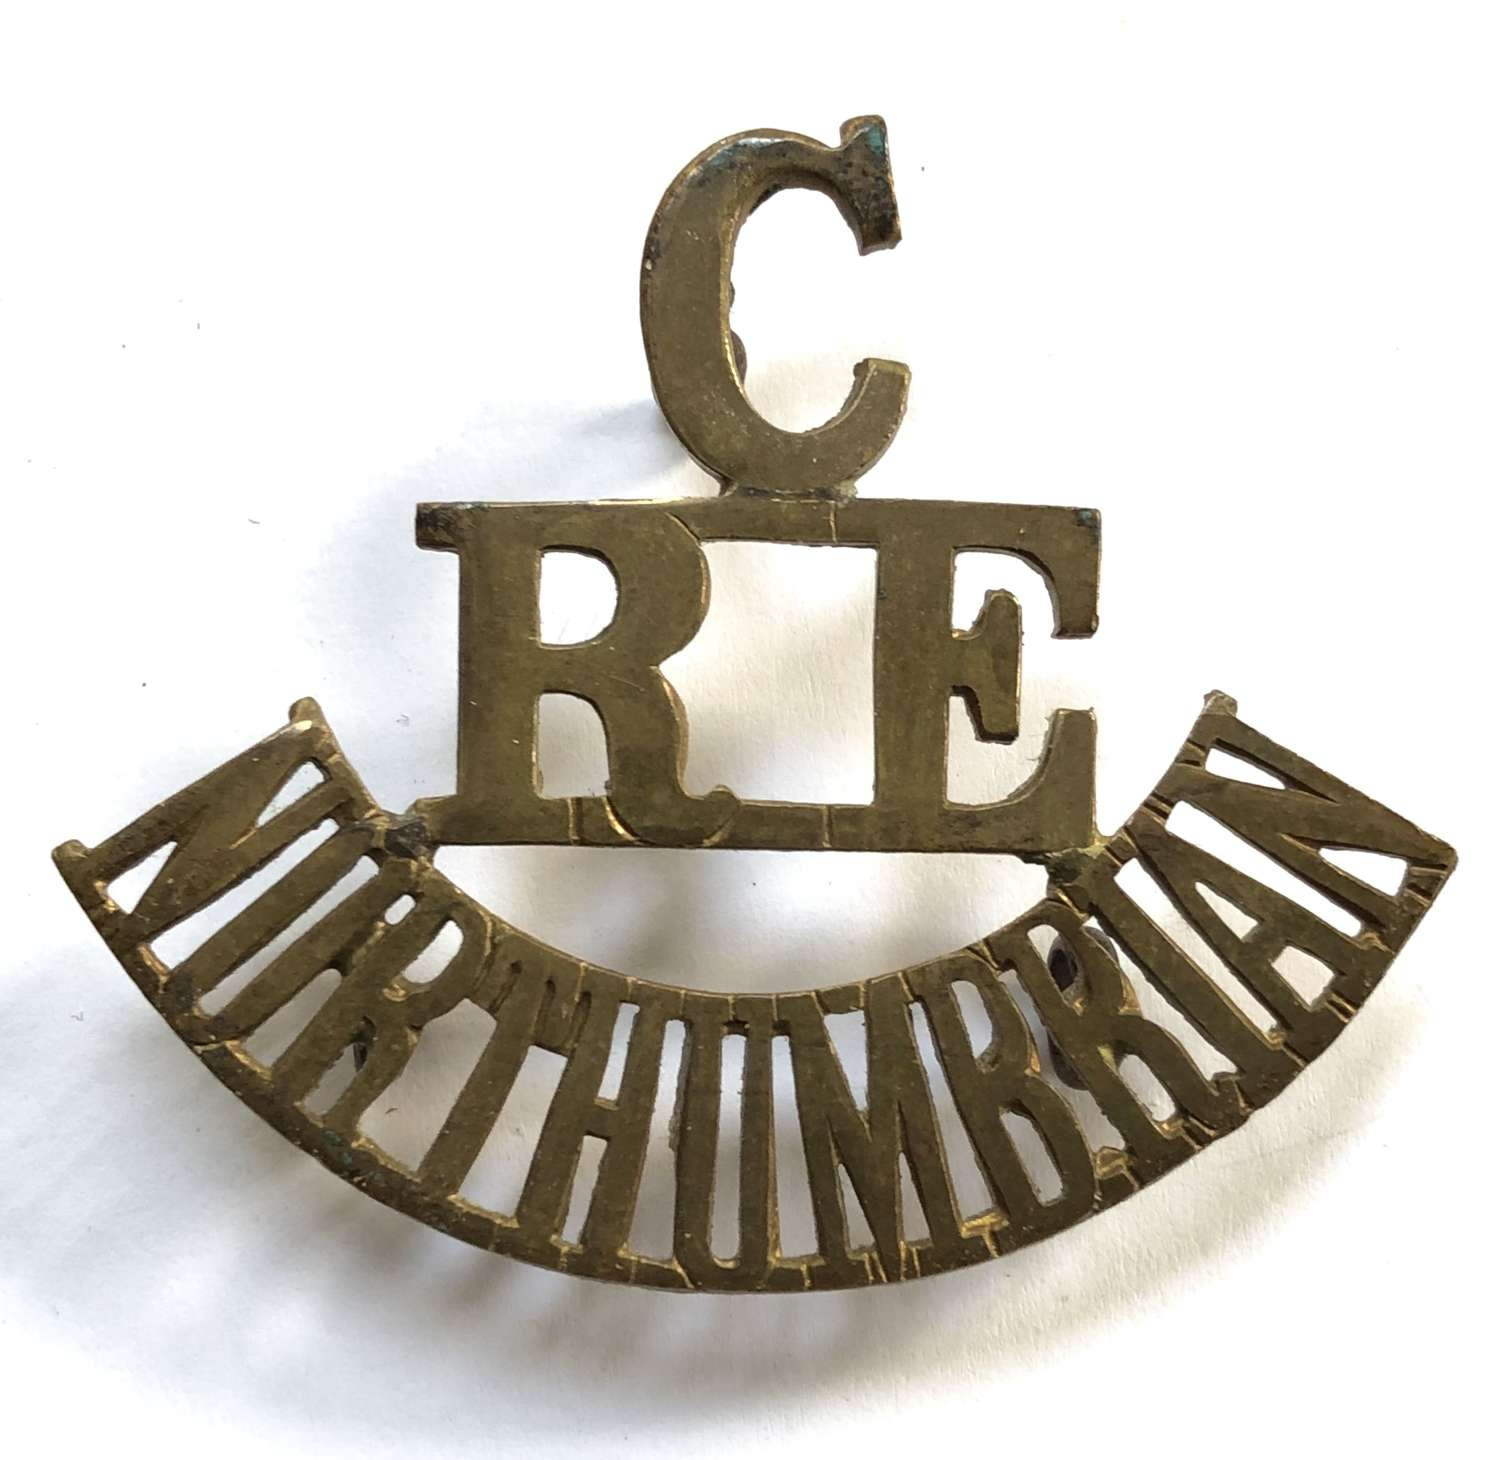 C/RE/NORTHUMBRIAN scarce brass shoulder title circa 1916